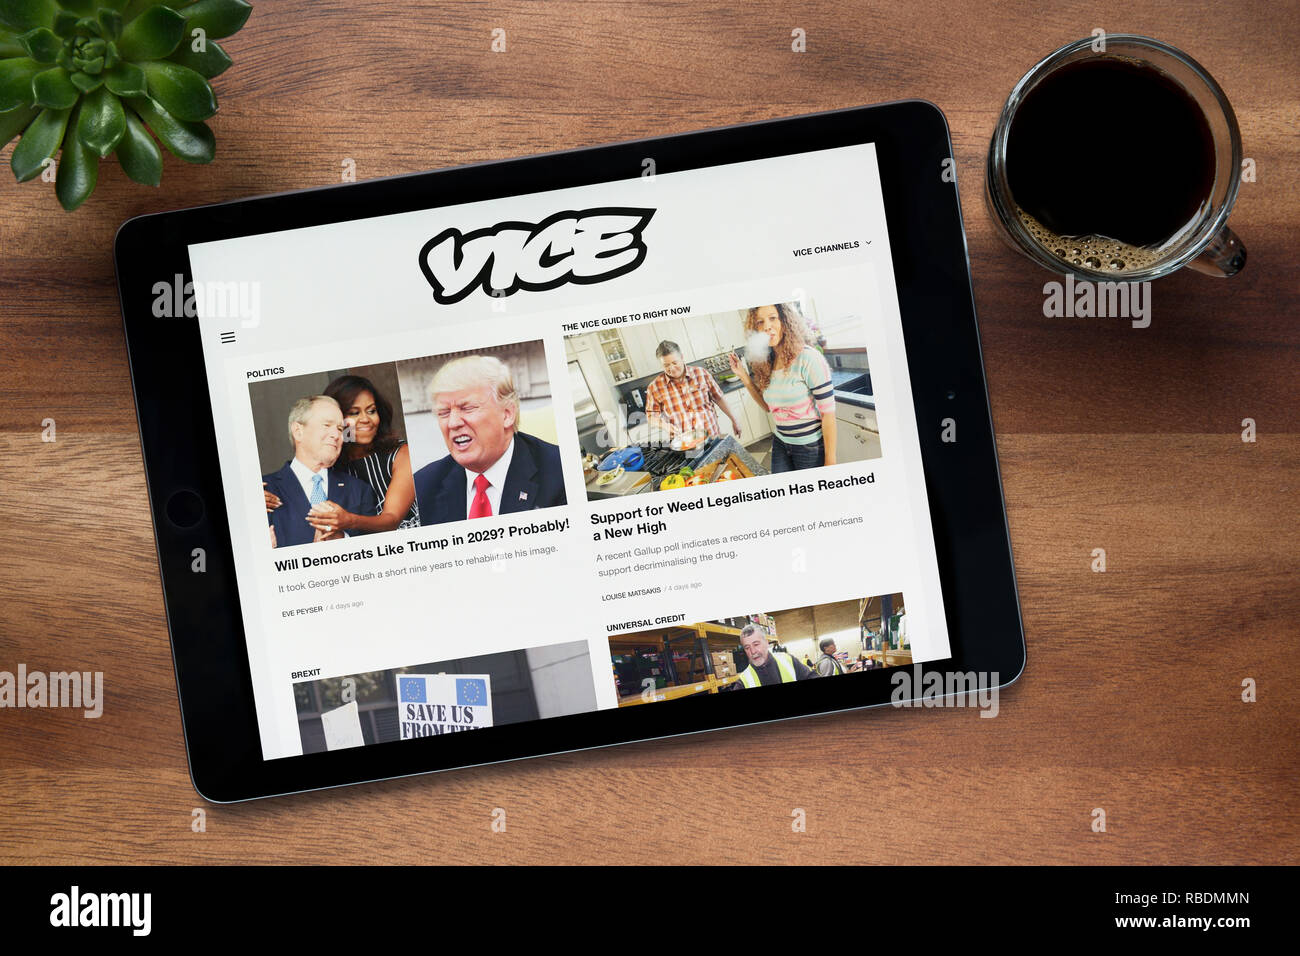 The website of Vice is seen on an iPad tablet, on a wooden table along with an espresso coffee and a house plant (Editorial use only). - Stock Image